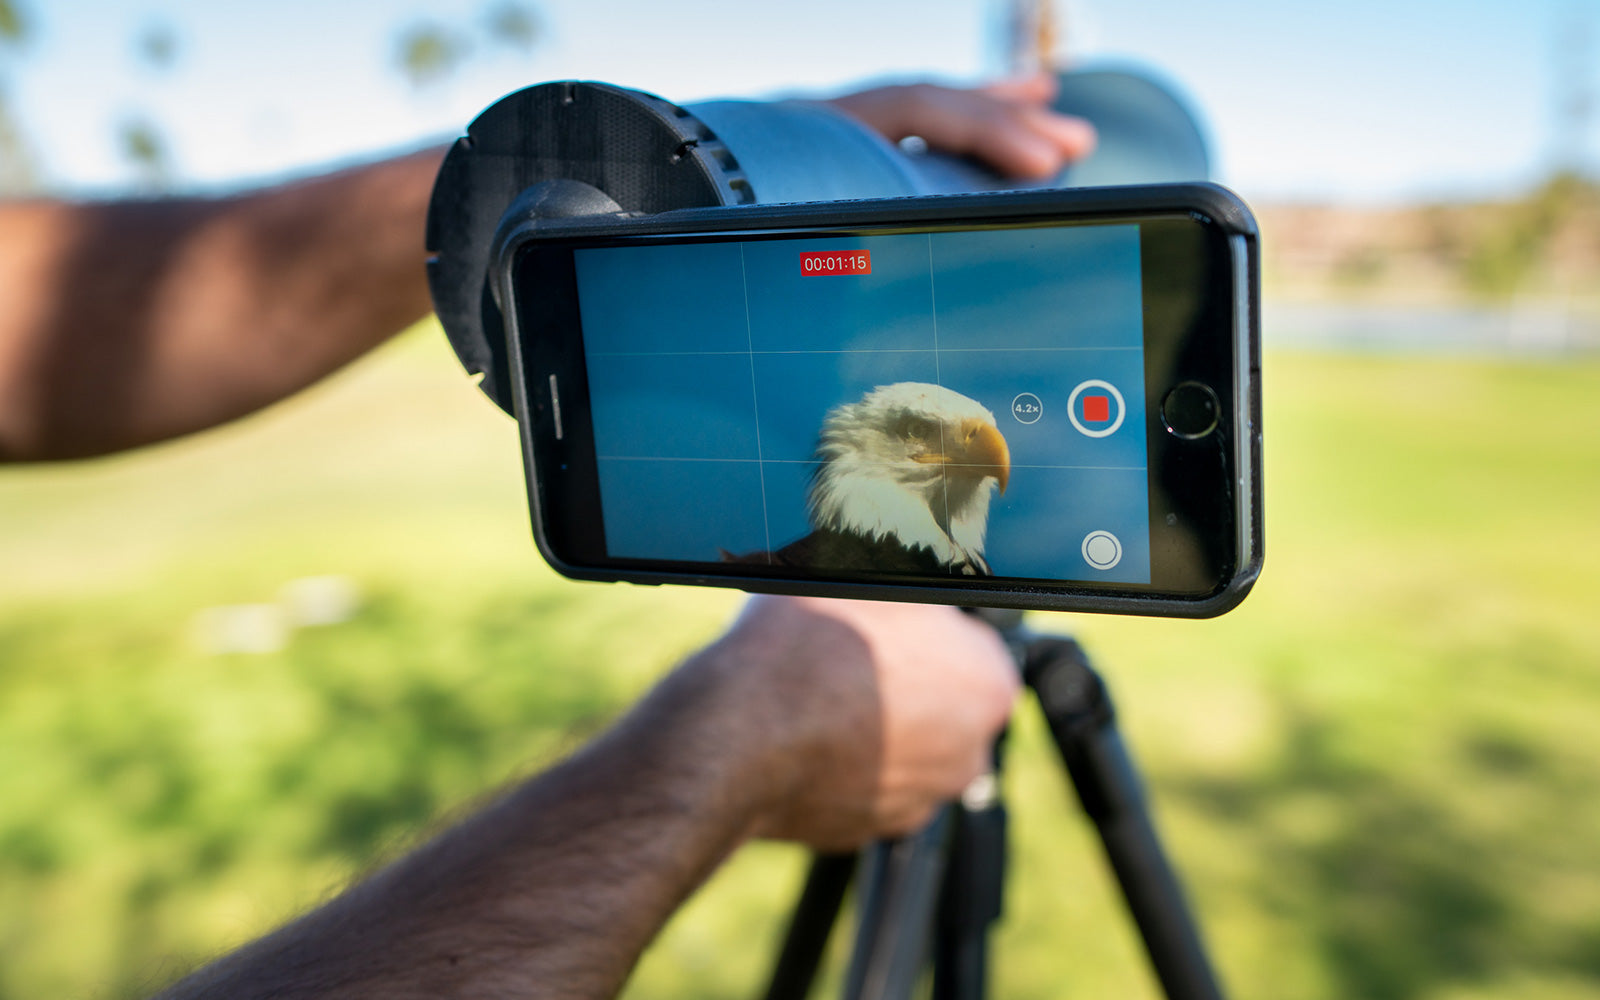 digiscoping with a tripod